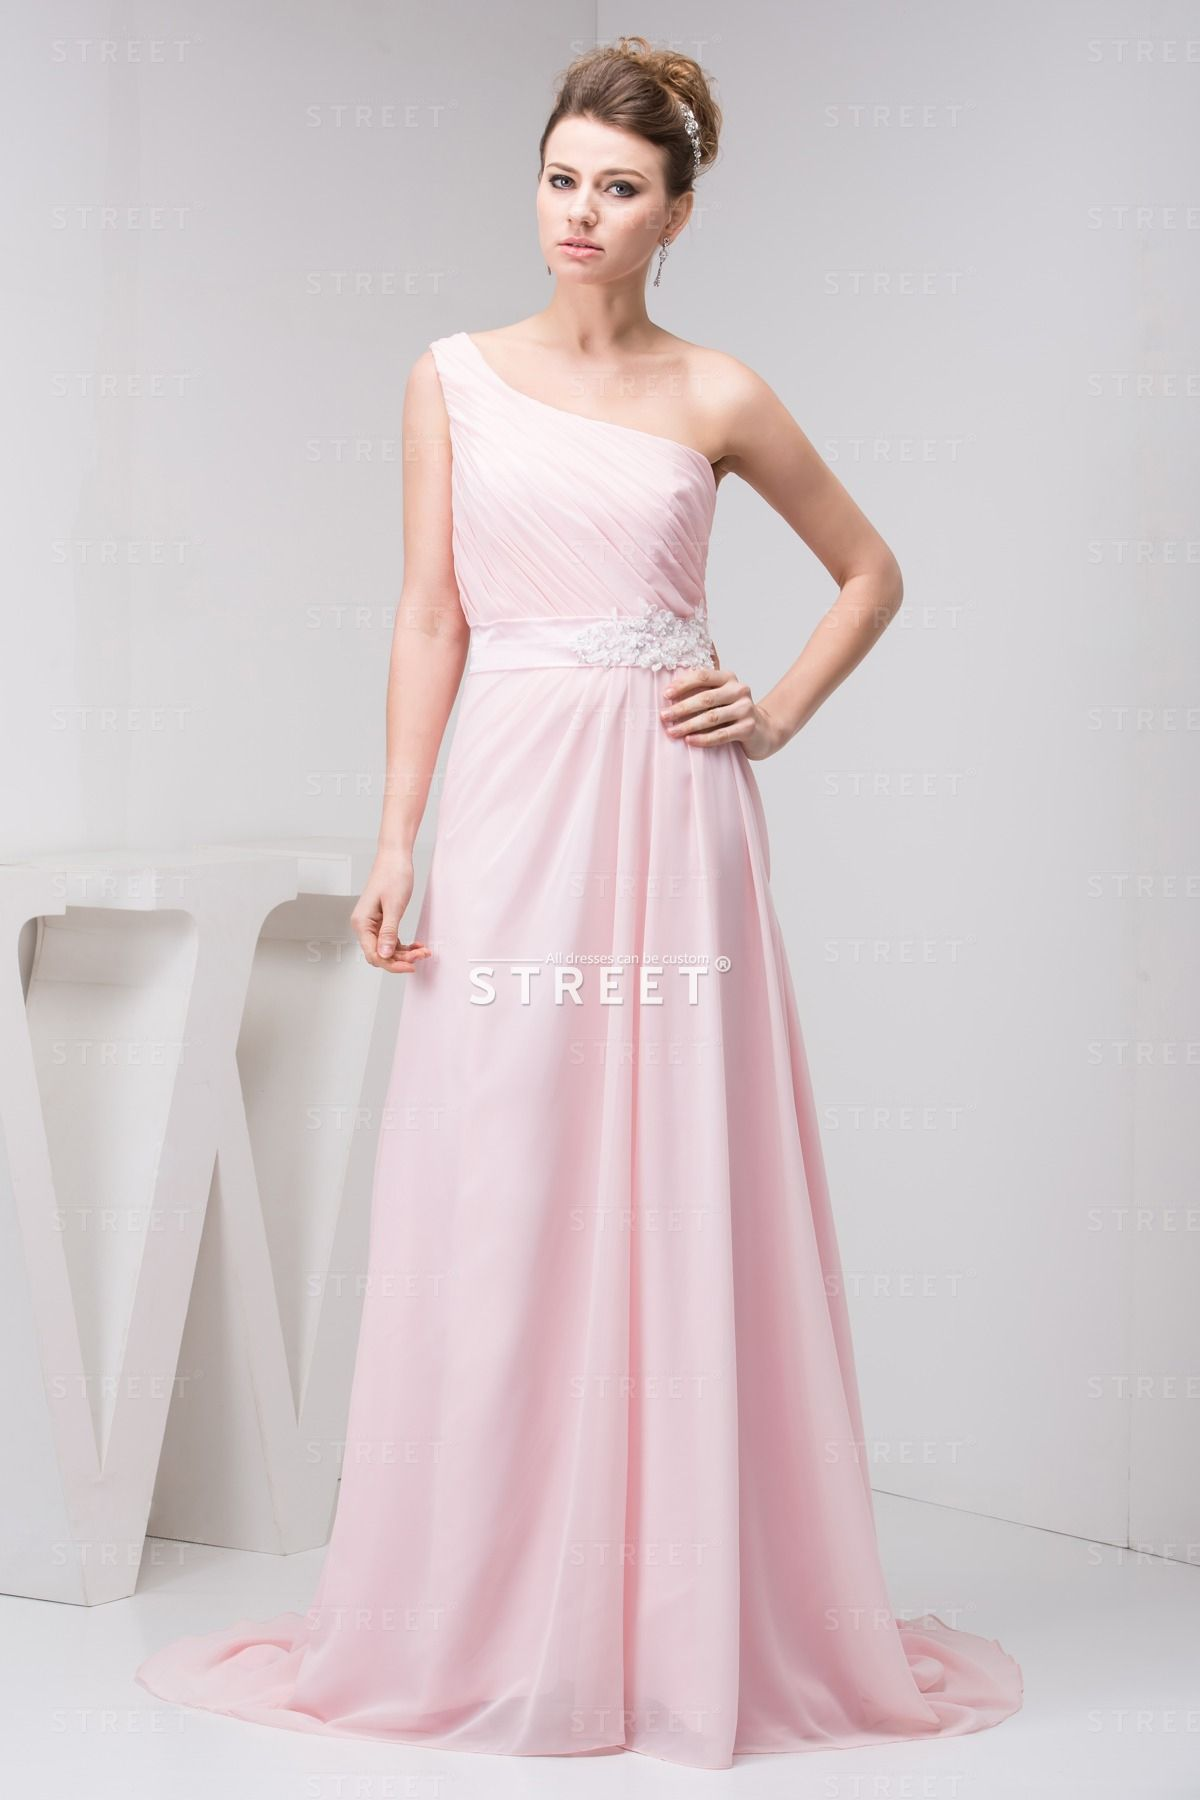 Sweet Girls Pearl Pink Sweep Train Ruched Teenage Wedding Guest Dress